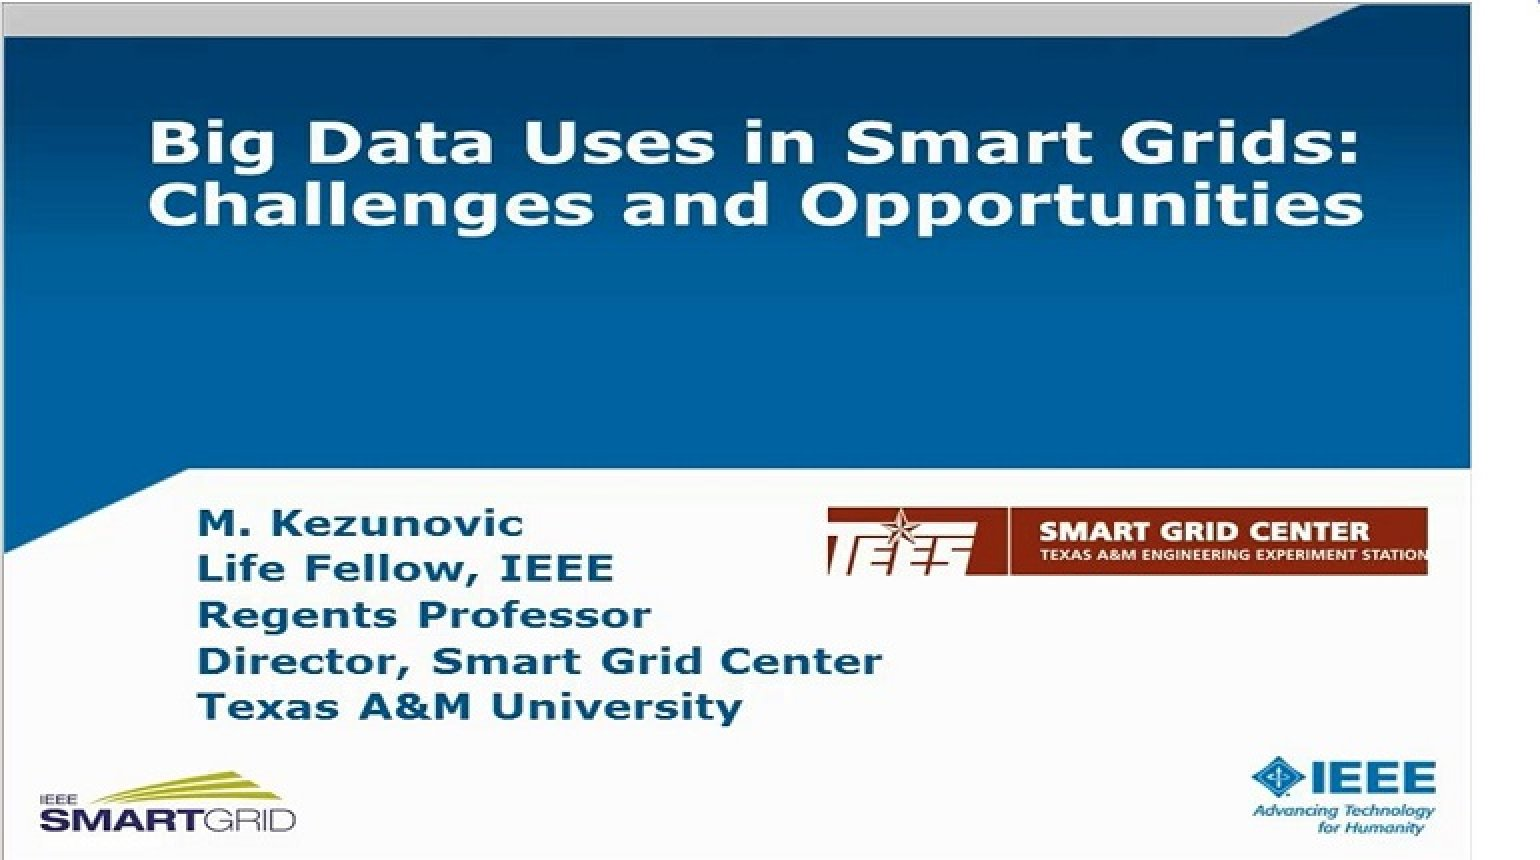 Big Data Applications in Smart Grids: Benefits and Challenges presented by Mladen Kezunovic